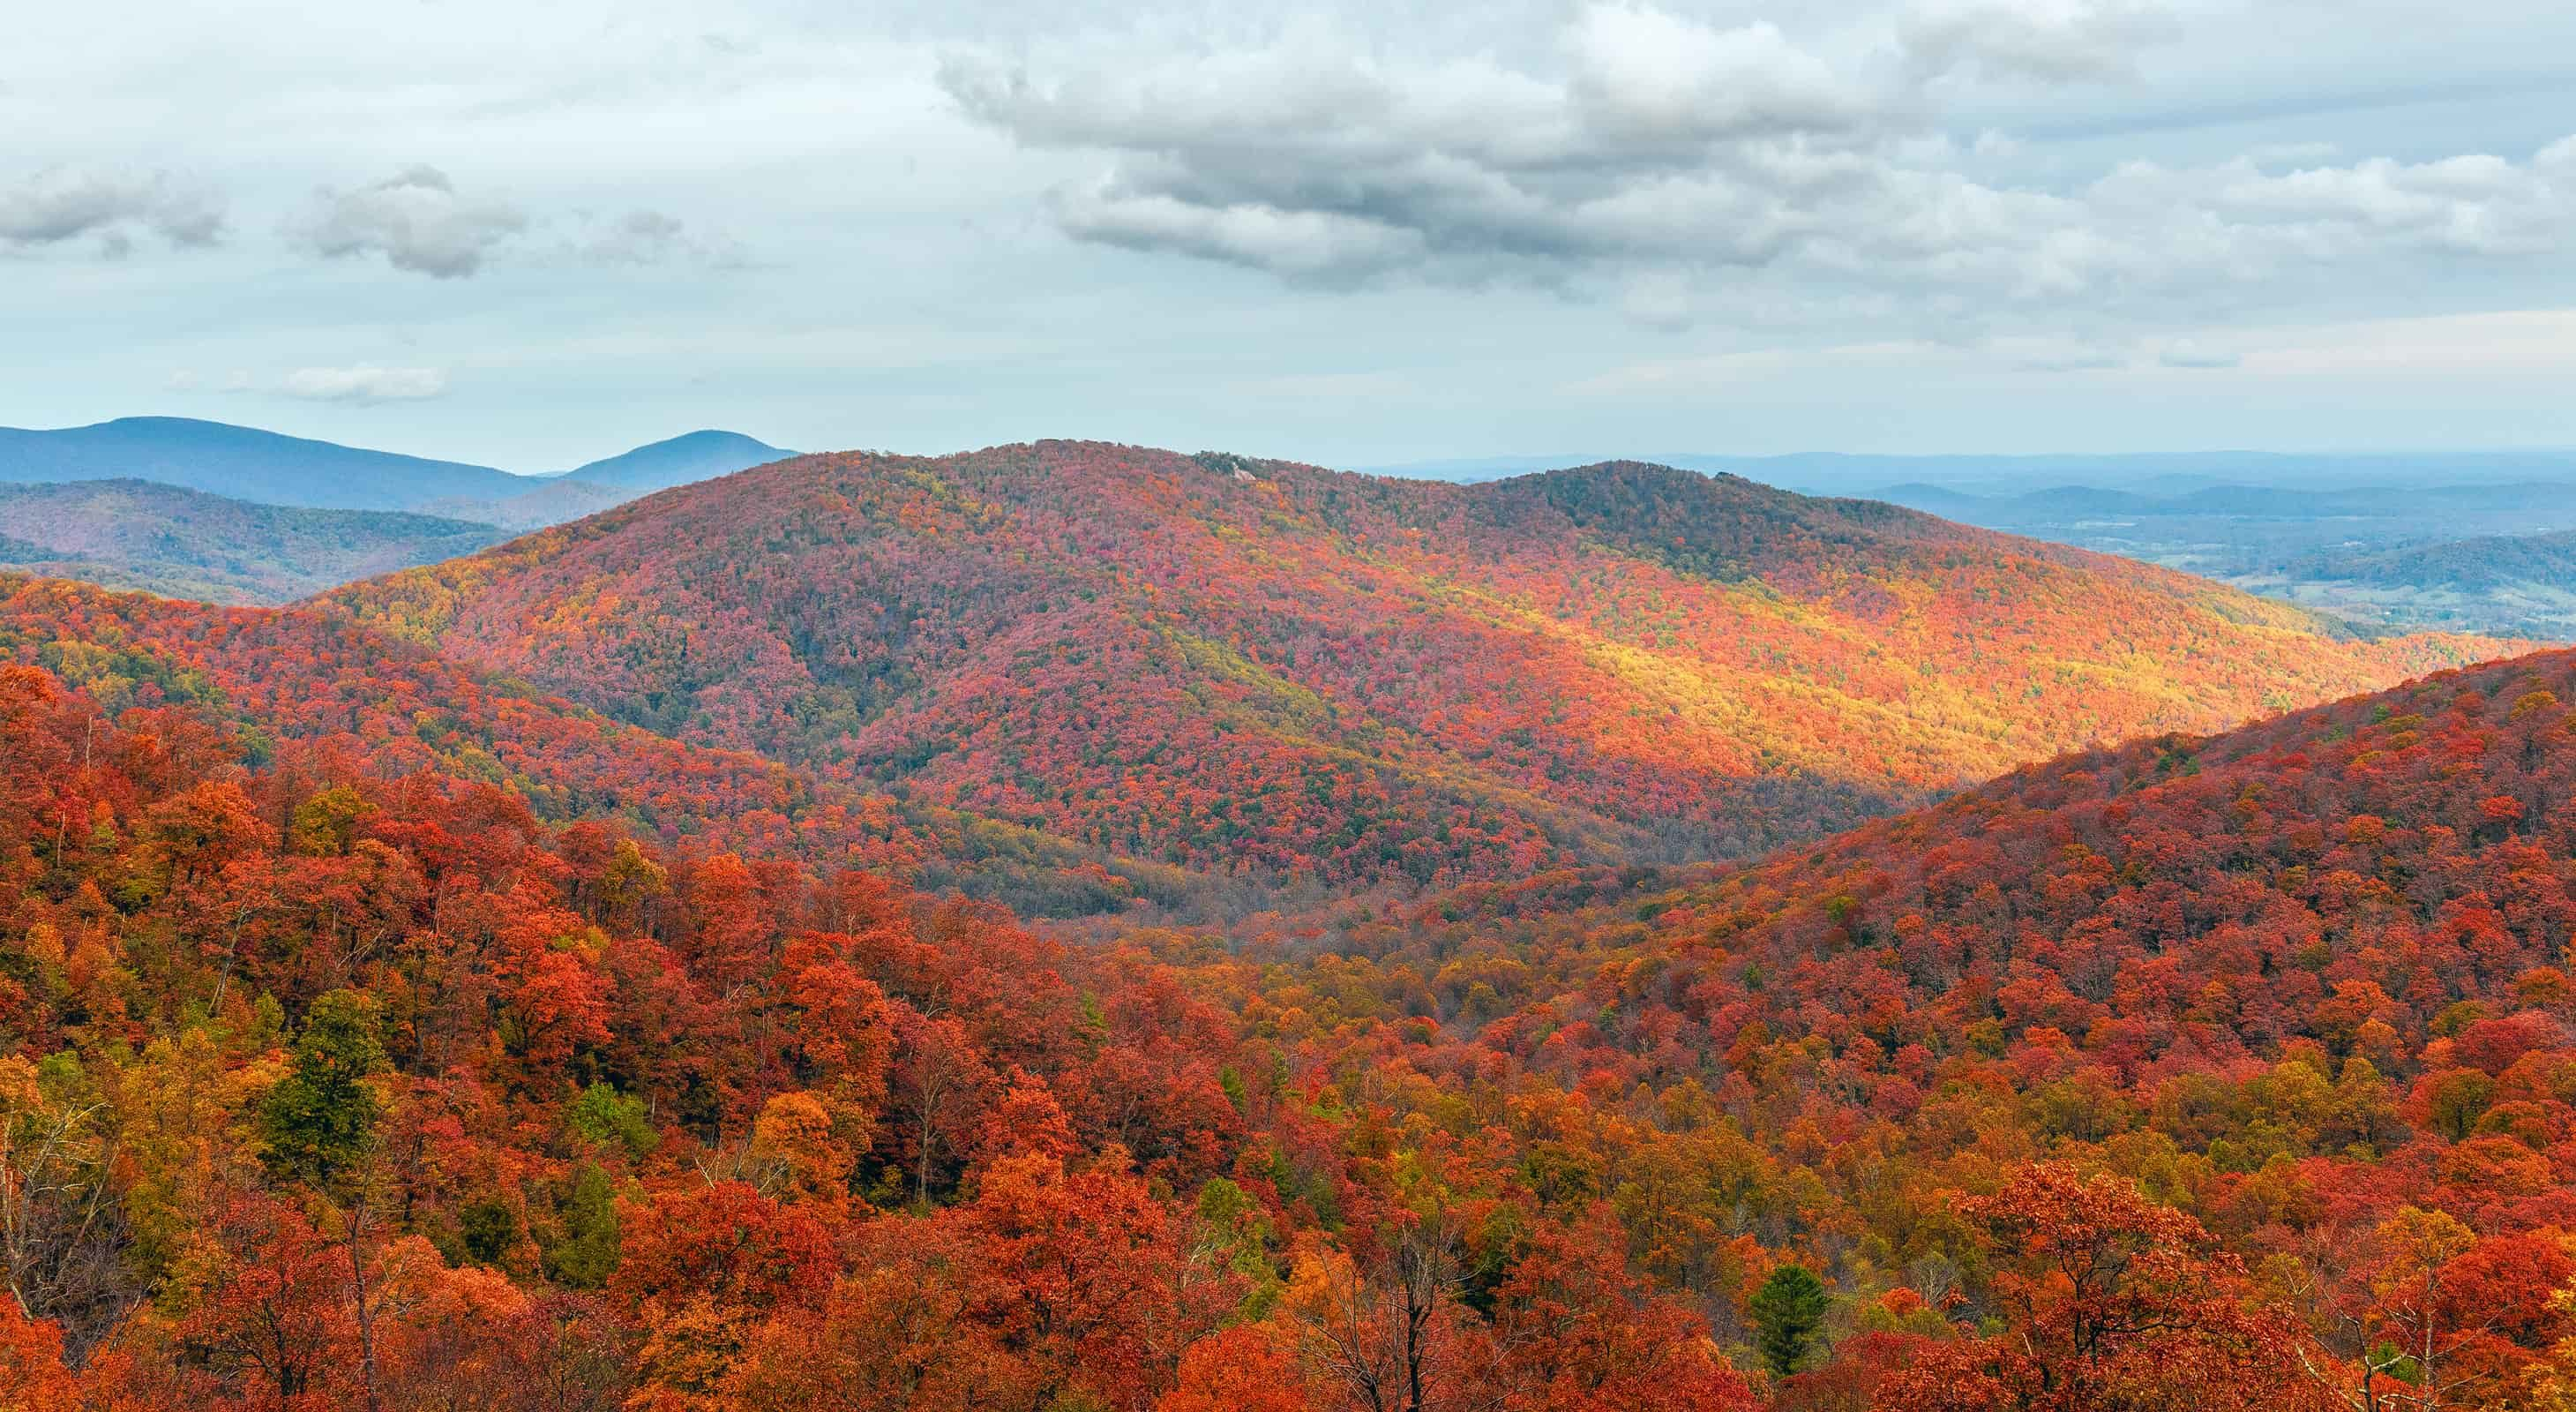 Fall foliage in Shenandoah National Park